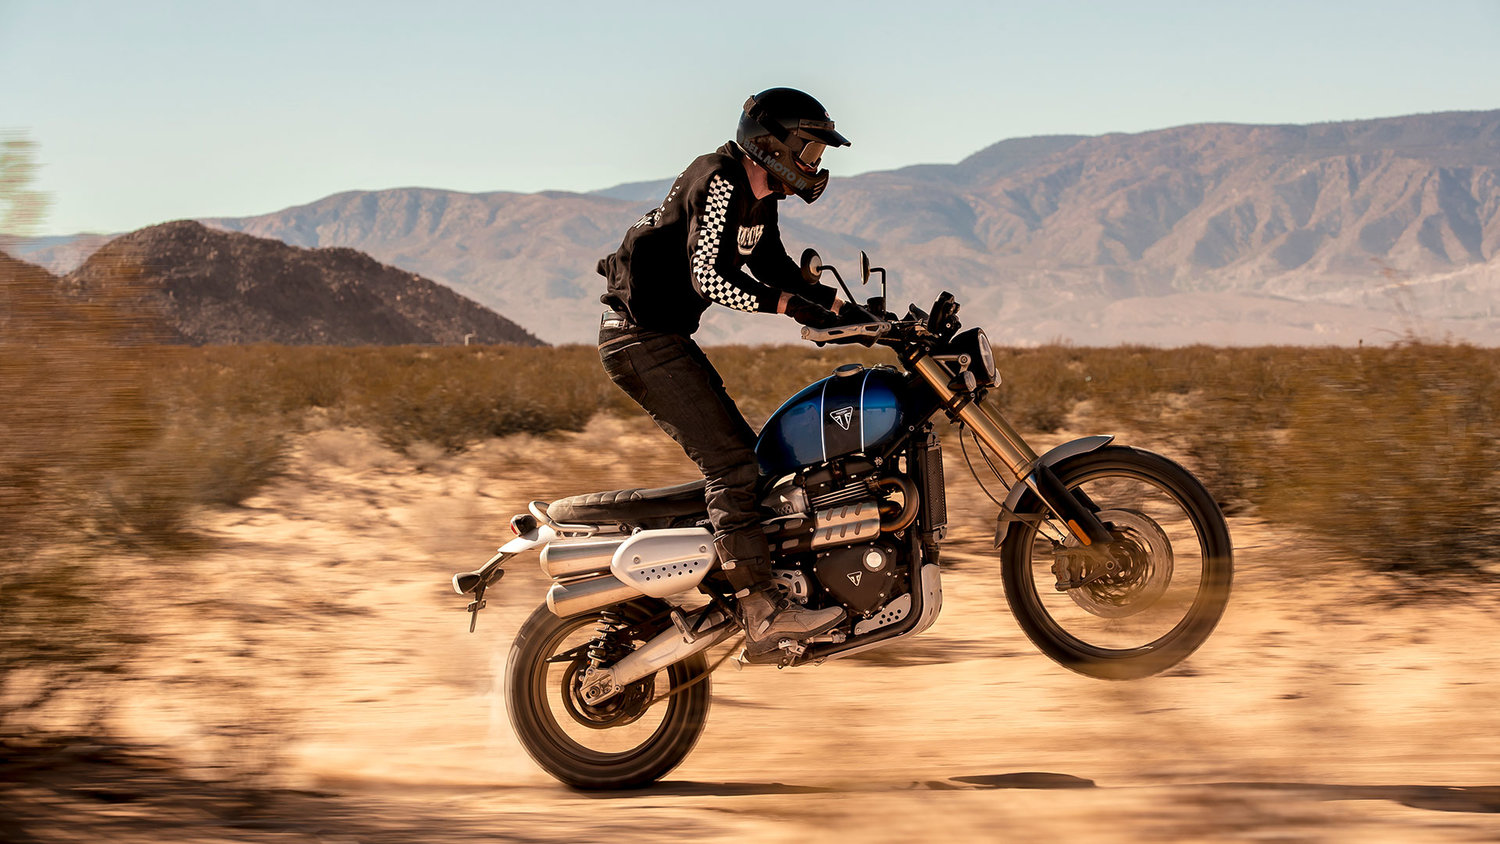 2019 Triumph Scrambler 1200 Xe Pricing Preview And Speculation